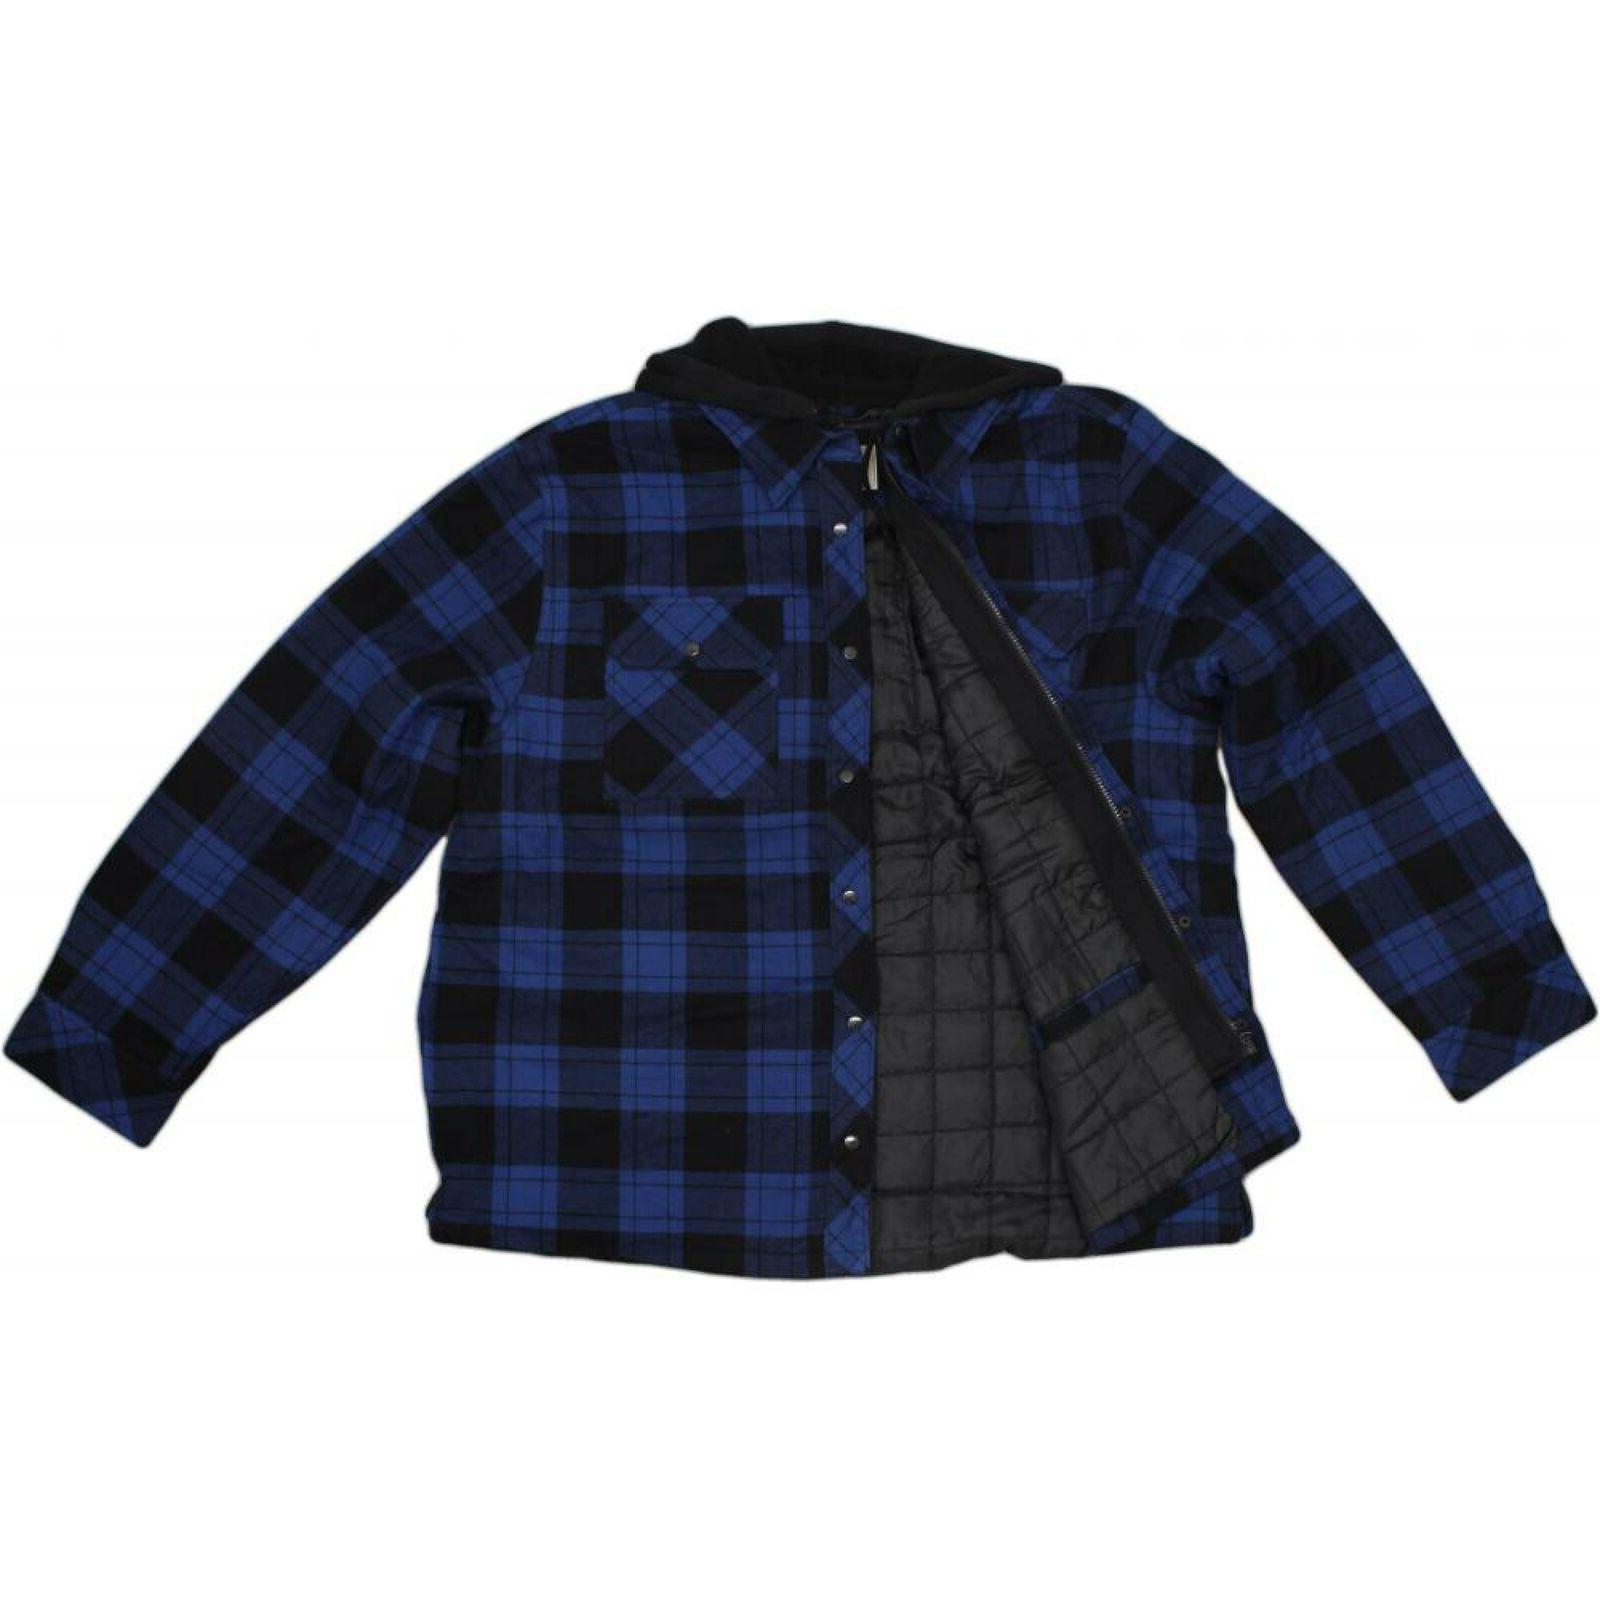 men s hooded flannel shirt jacket